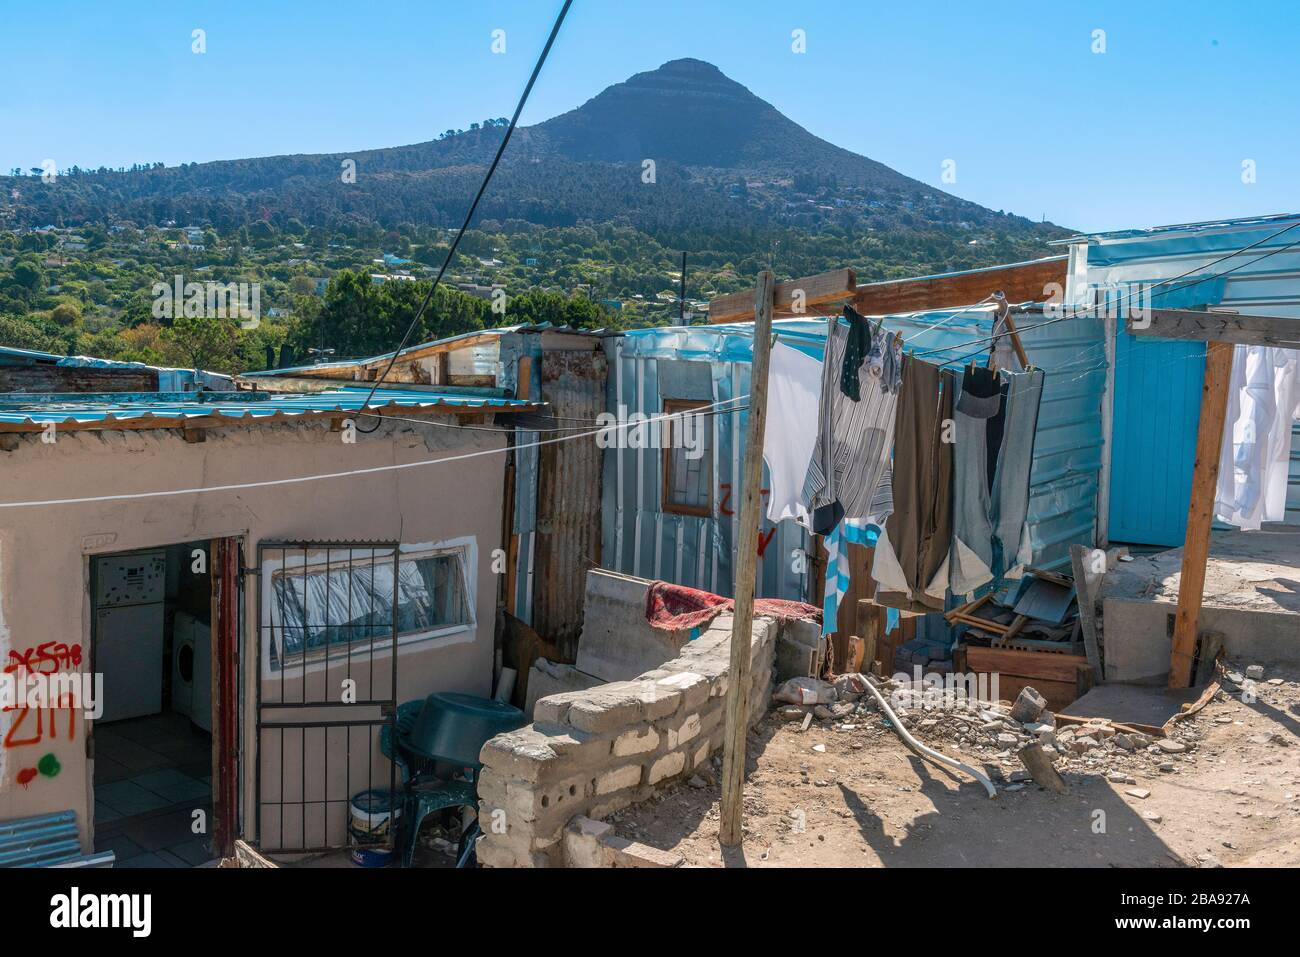 Small dwelling with washing hanging outside in the overcrowded Imizamo Yethu Township, Hout Bay, Cape Town, South Africa Stock Photo